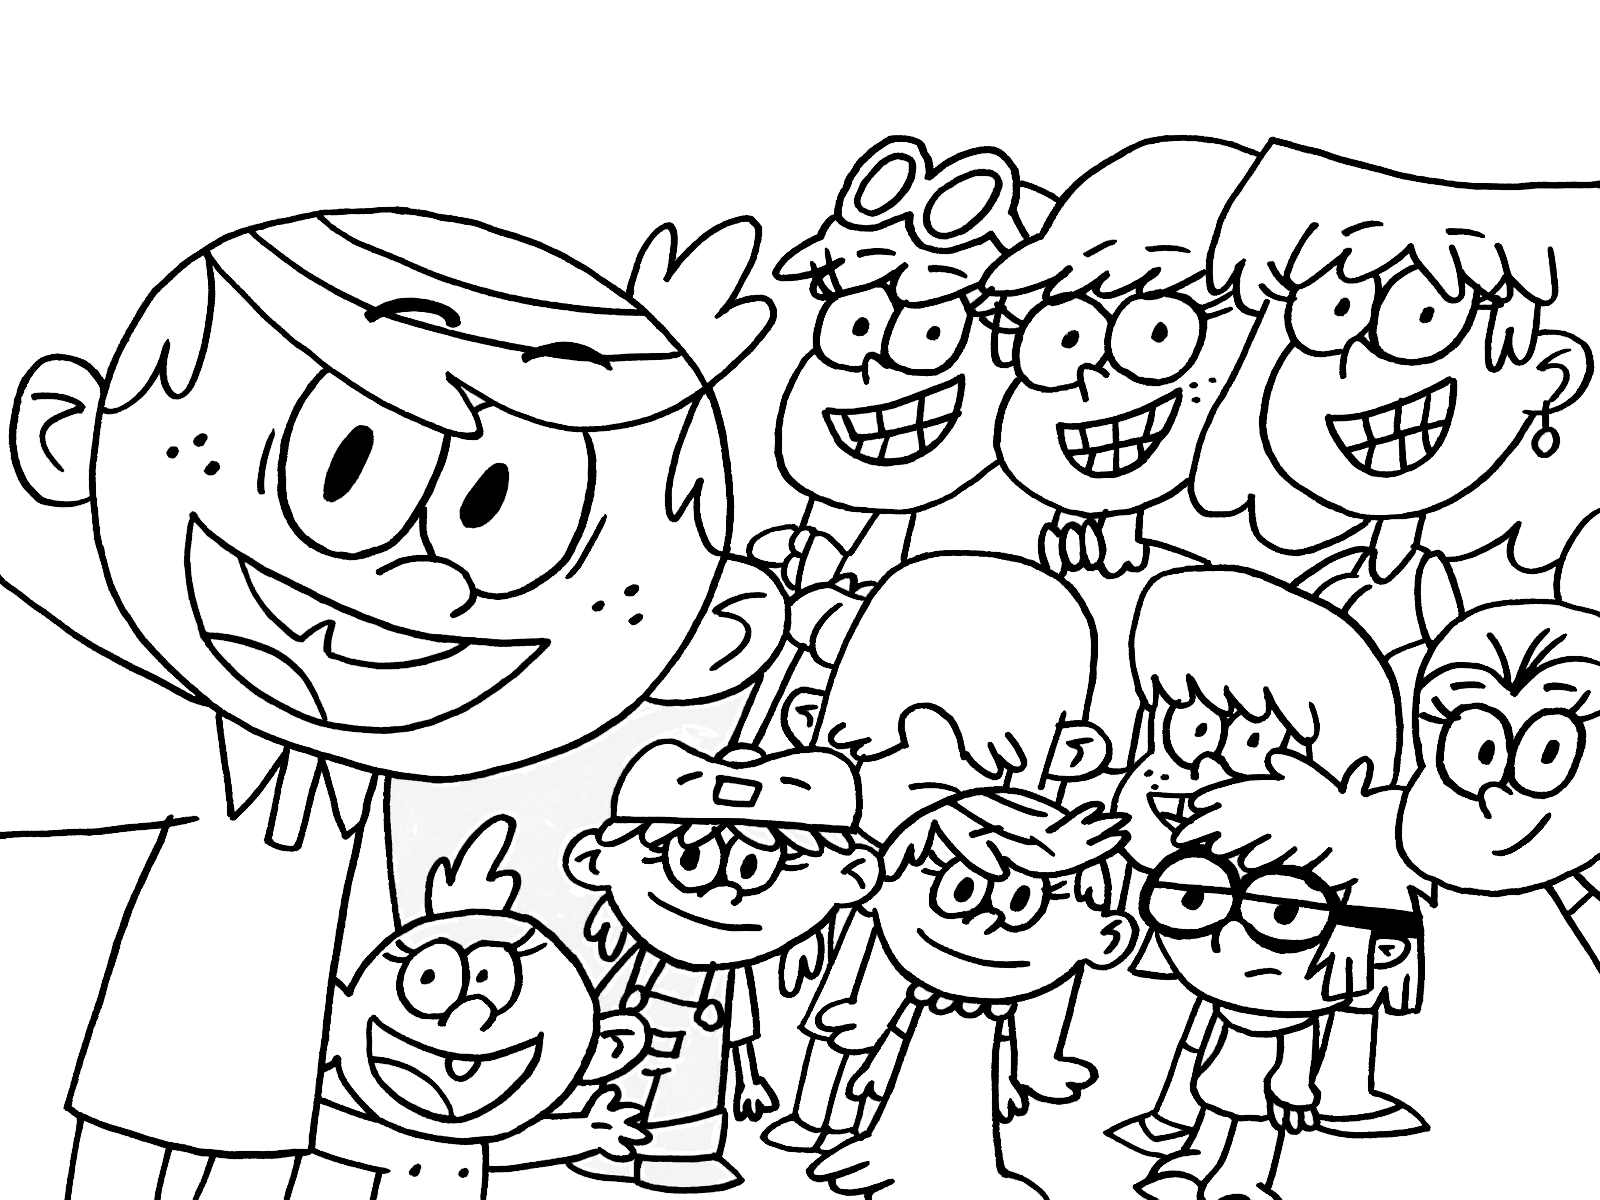 Image Result For The Loud House Coloring Pages Loud Hse House